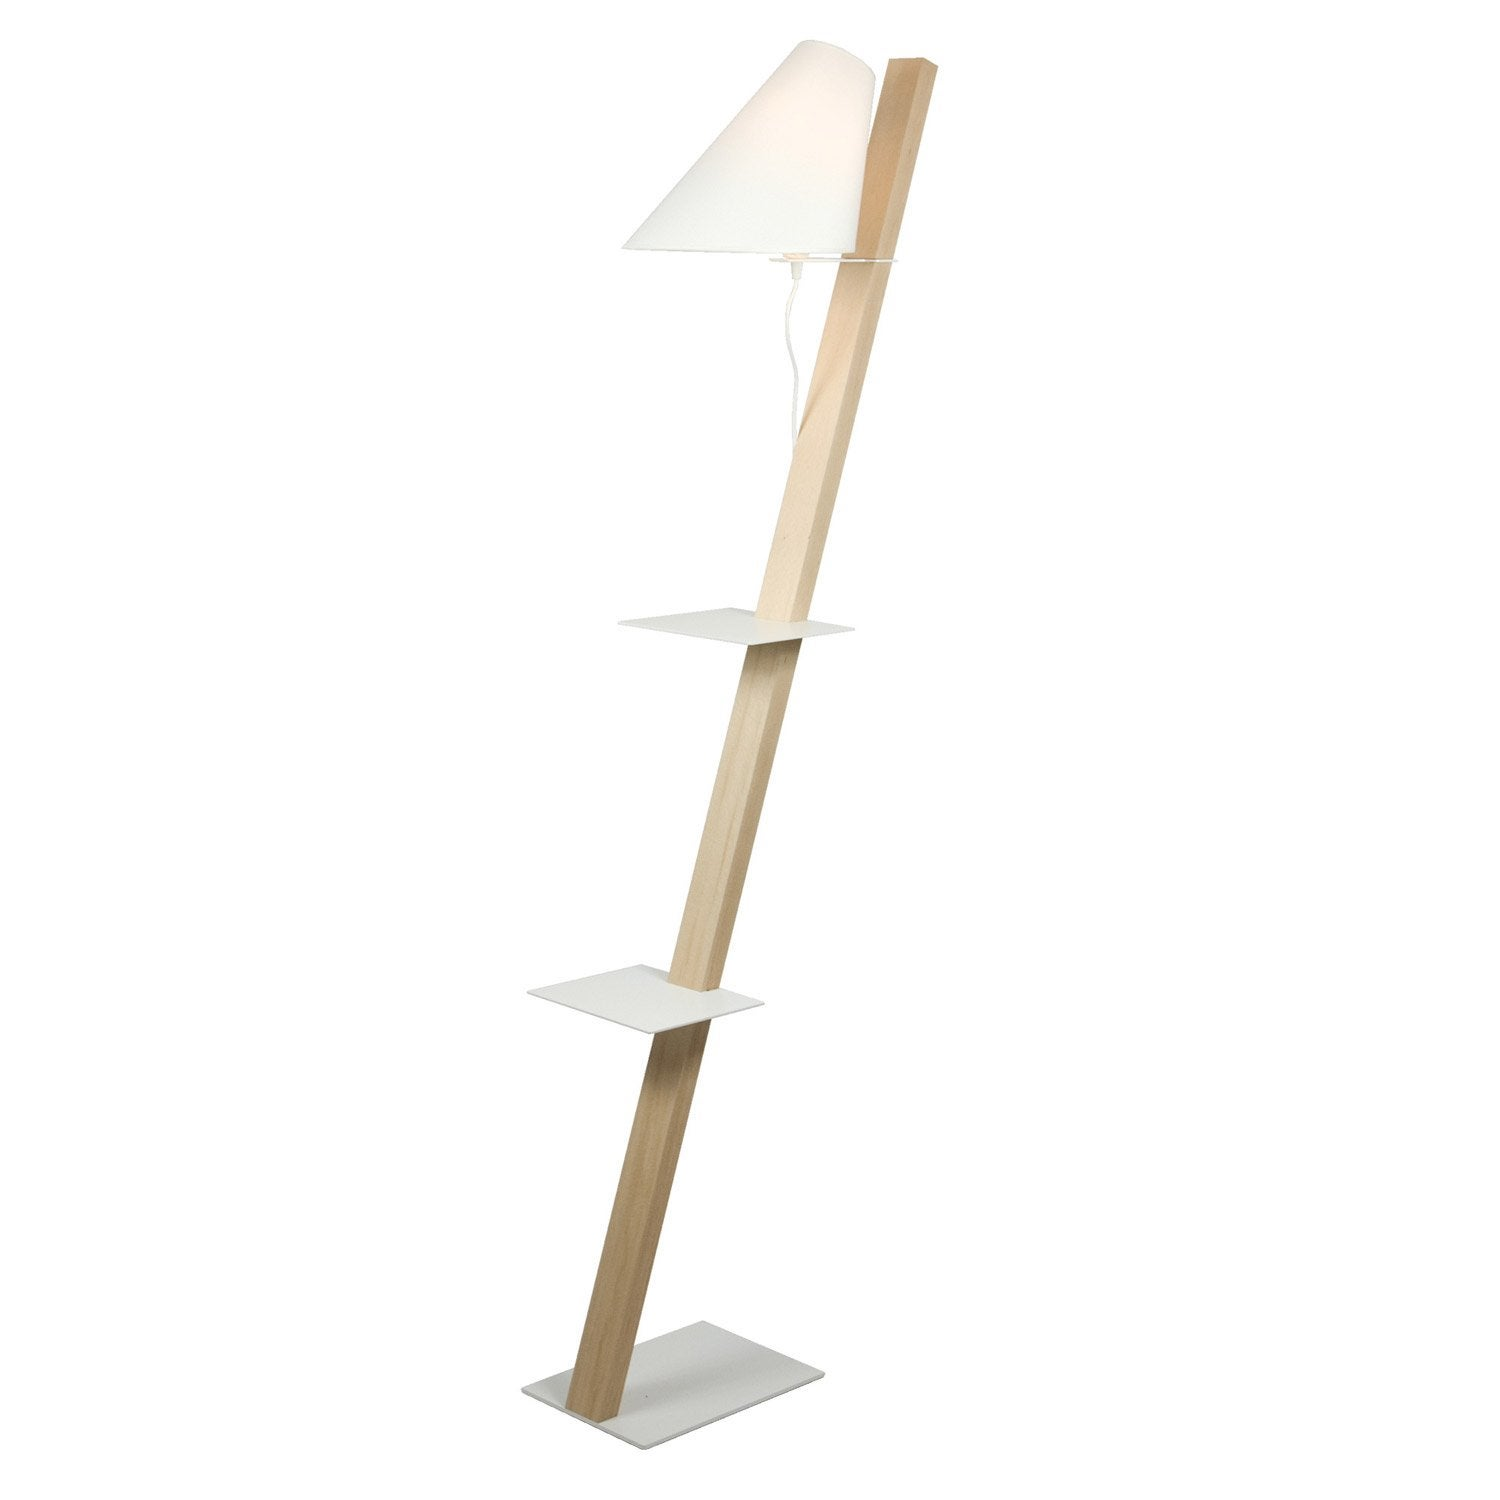 lampadaire vega 168 cm blanc 60 w leroy merlin. Black Bedroom Furniture Sets. Home Design Ideas